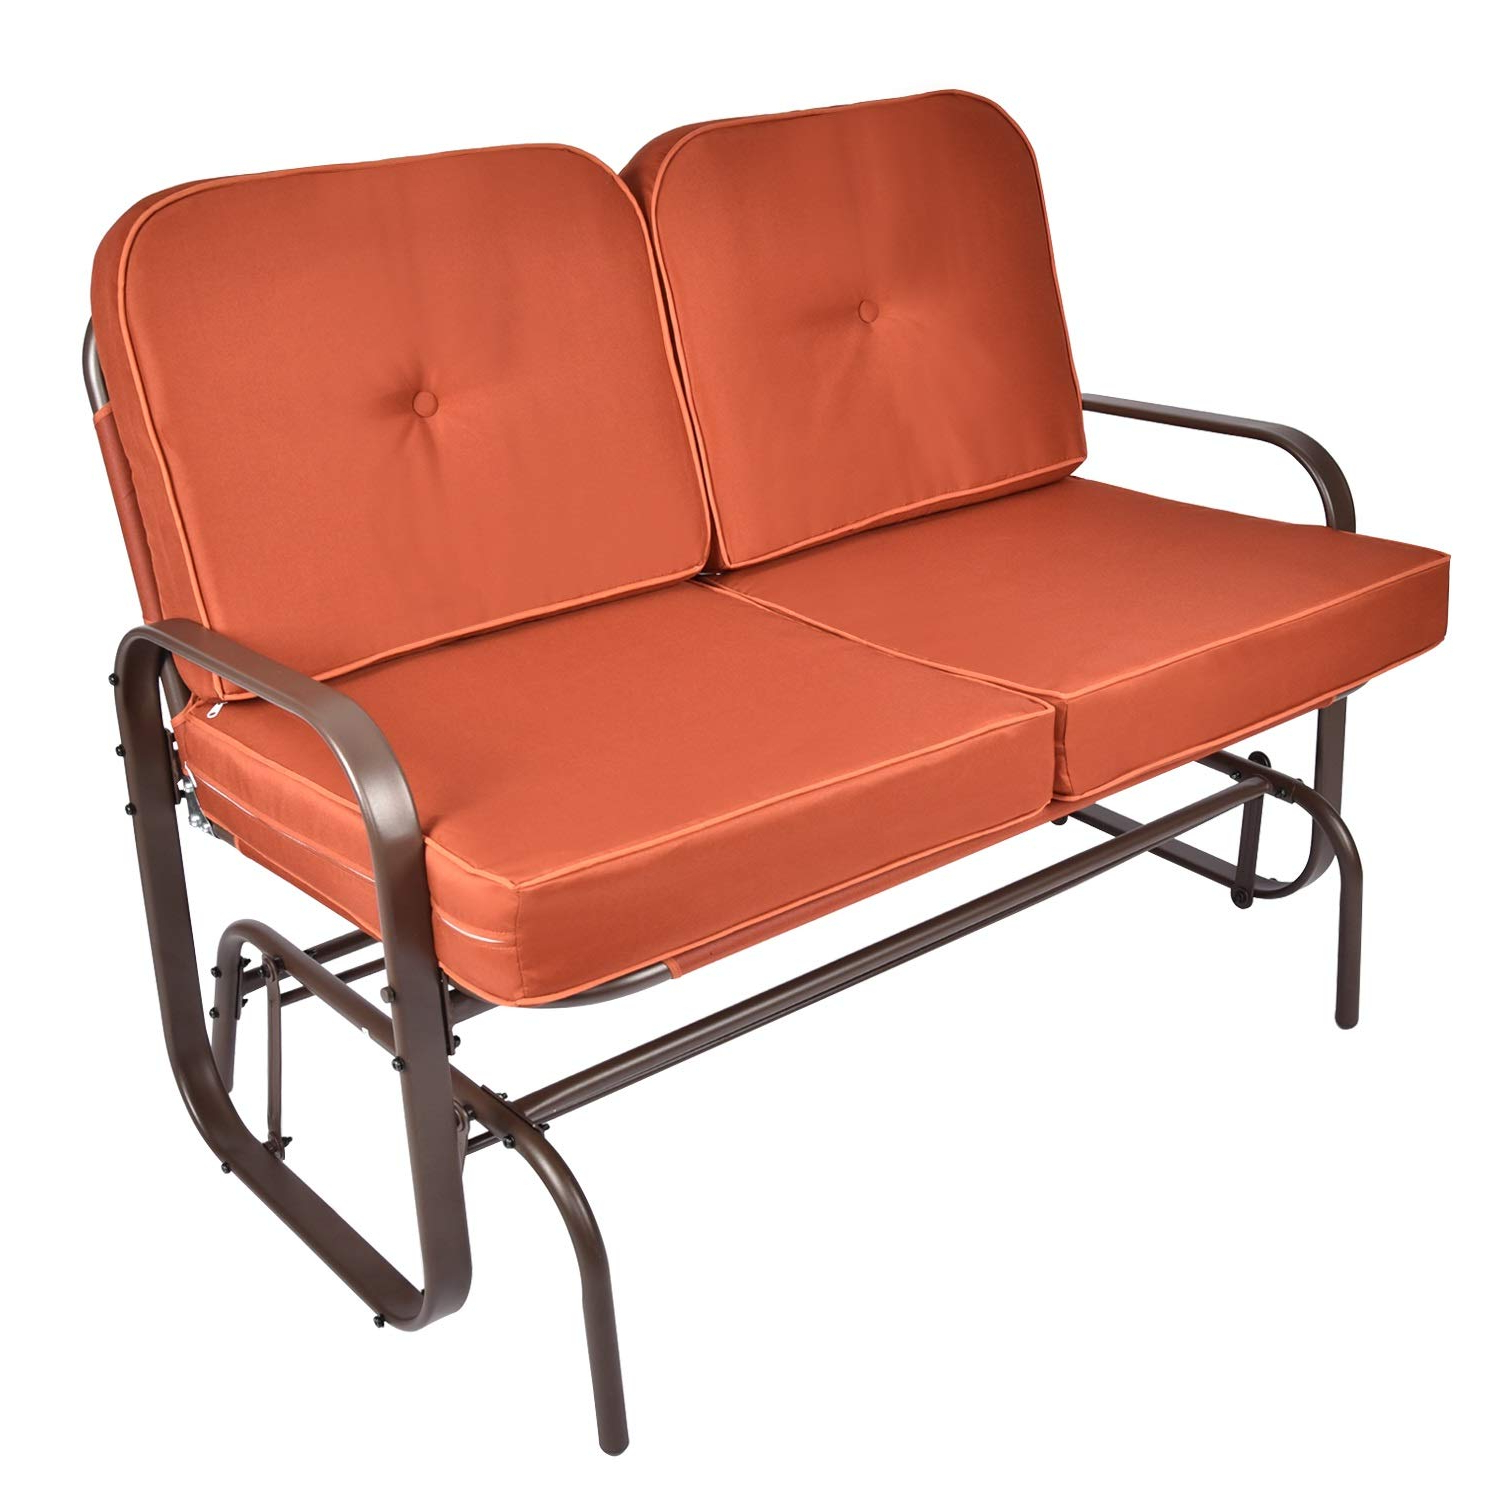 Well Liked Rocking Glider Benches With Cushions Pertaining To Elecwish Outdoor Swing Glider Rocking Chair Patio Bench For 2 Person,  Garden Loveseat Seating Patio W/uv Resistant Cushions (Orange) (Gallery 9 of 30)